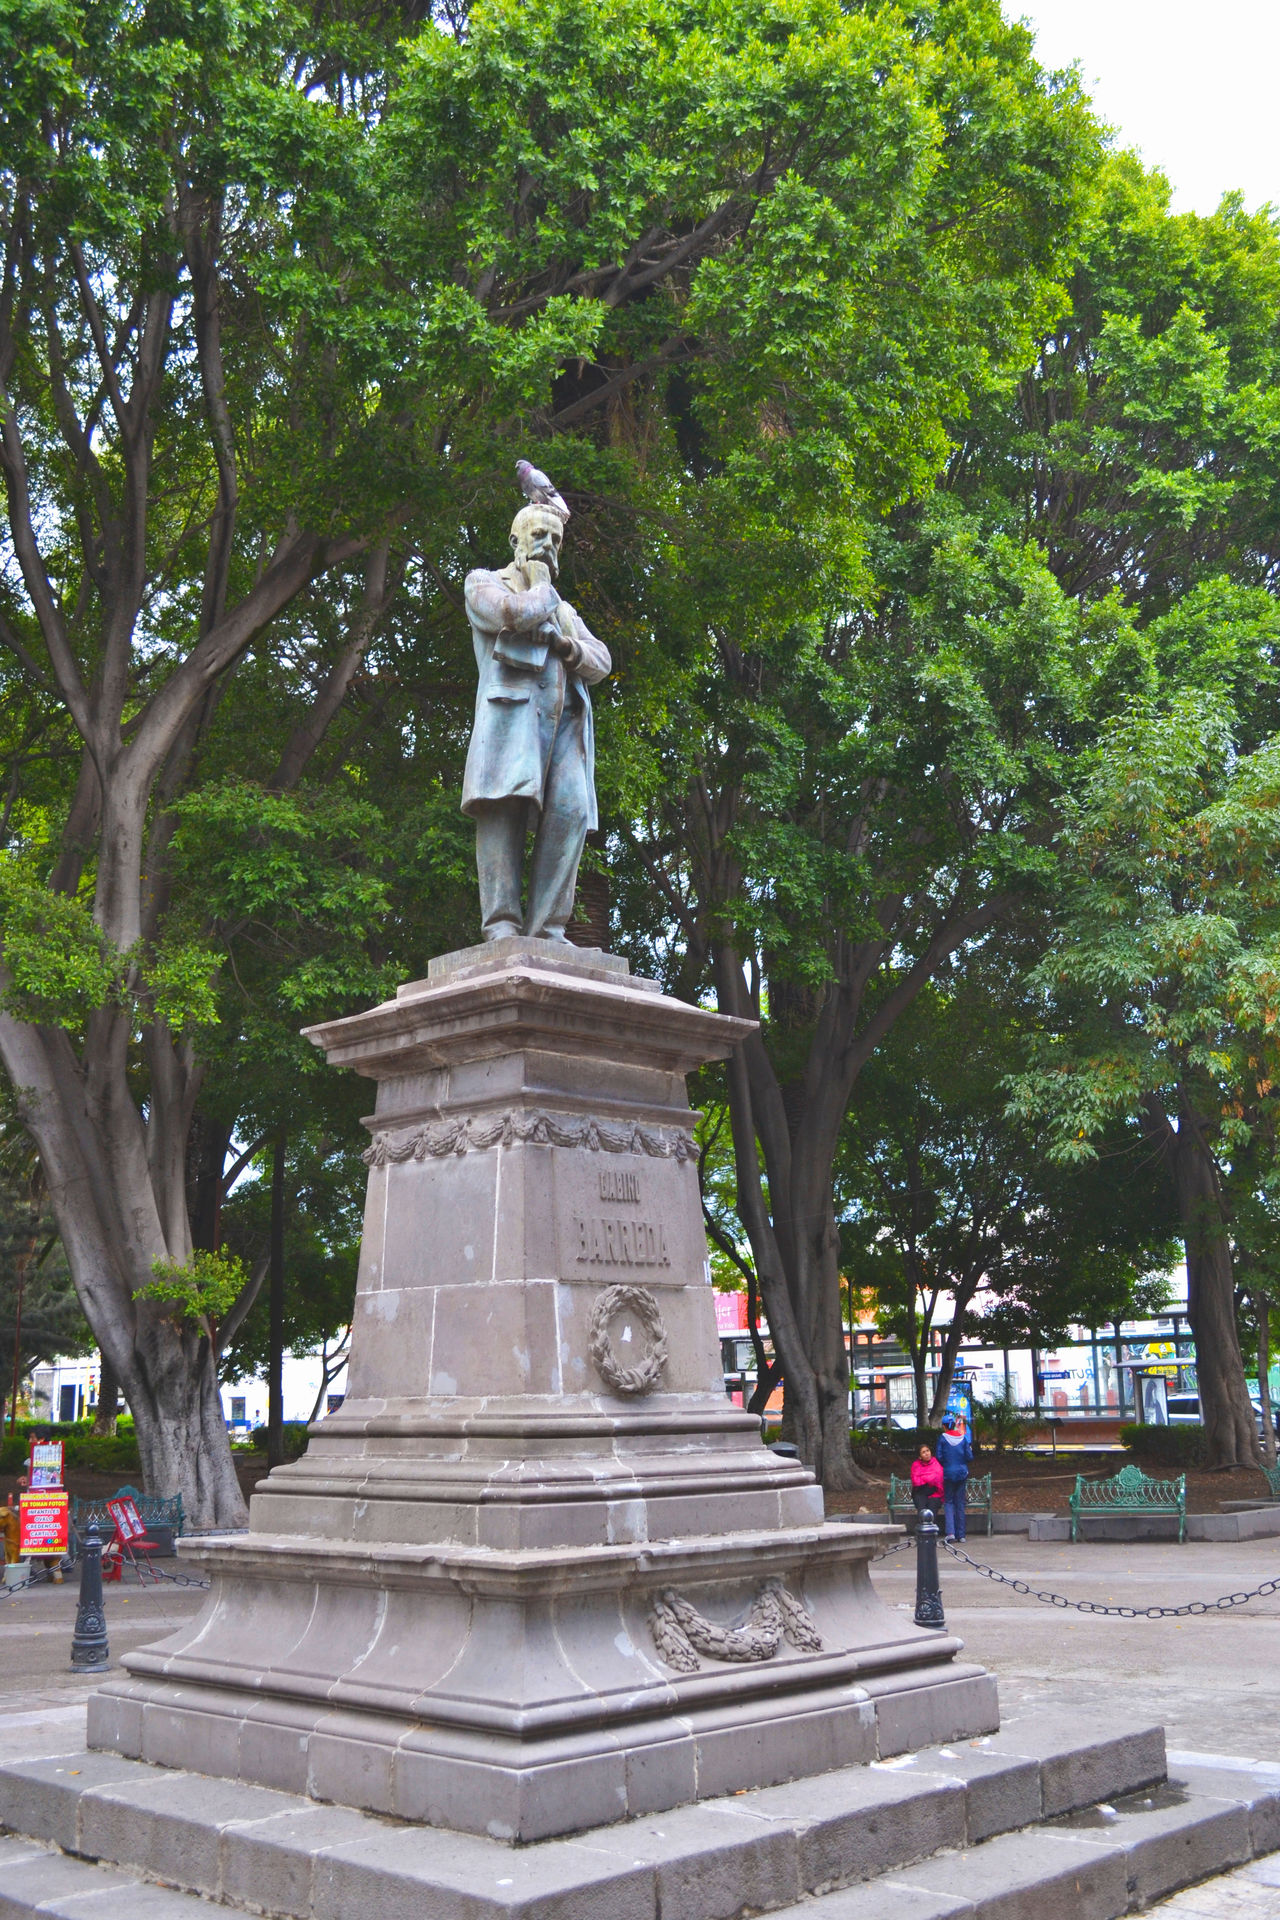 Dove Historic Historical Building Main Square Momument Outdoors Park Park - Man Made Space Pigeon Bird  Playpen Sculpture Statue Street Streetphotography Tree Zócalo